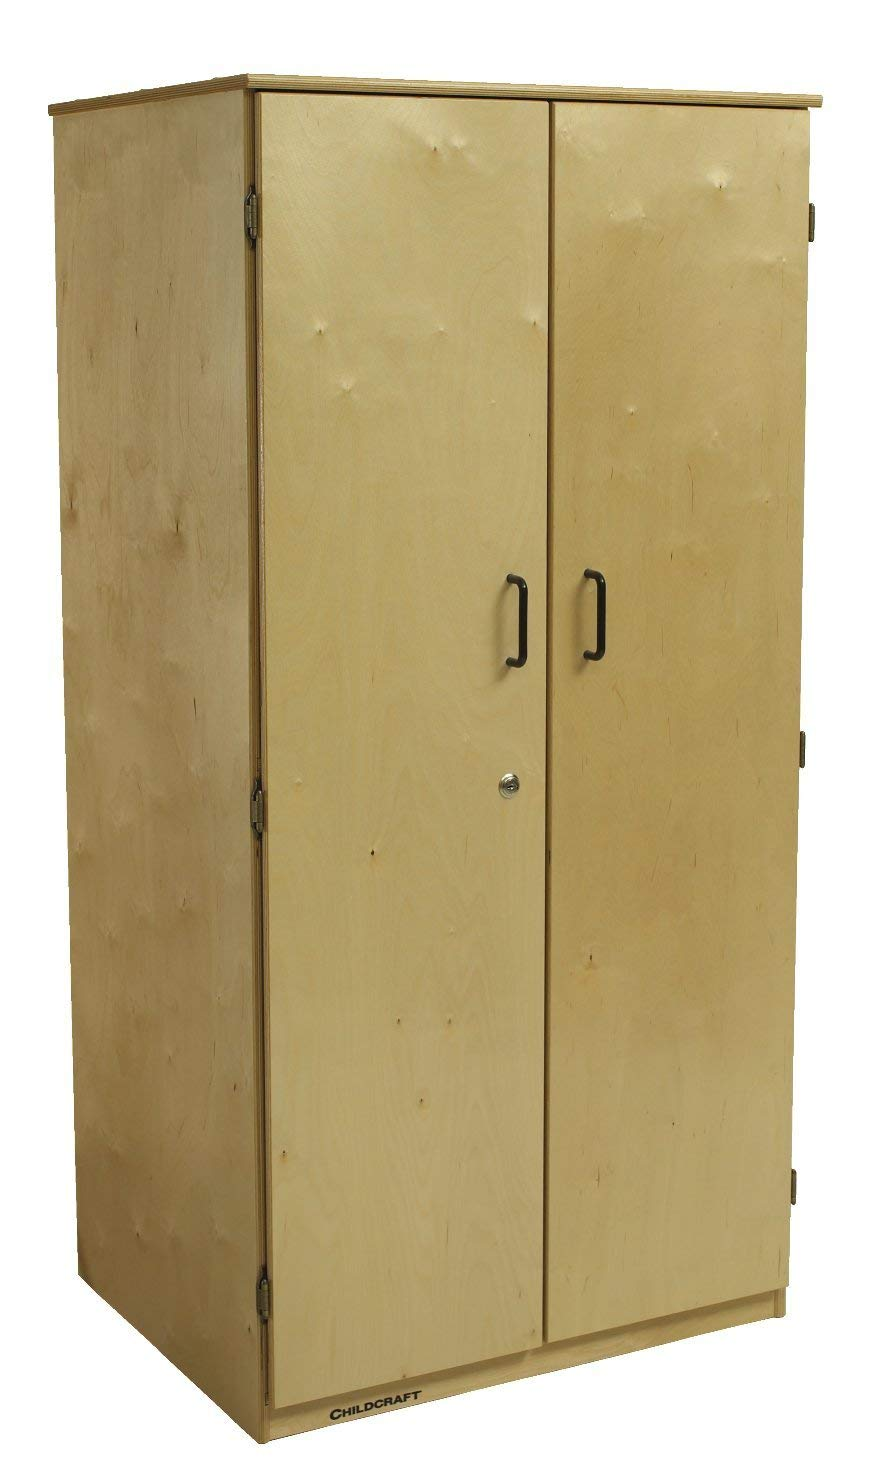 Childcraft 1484118 Locking 2-Door Teacher Storage Unit, 29-3/4 x 23 x 60 Inches Height,23 Inches Width,29.75 Inches Length,Natural Wood